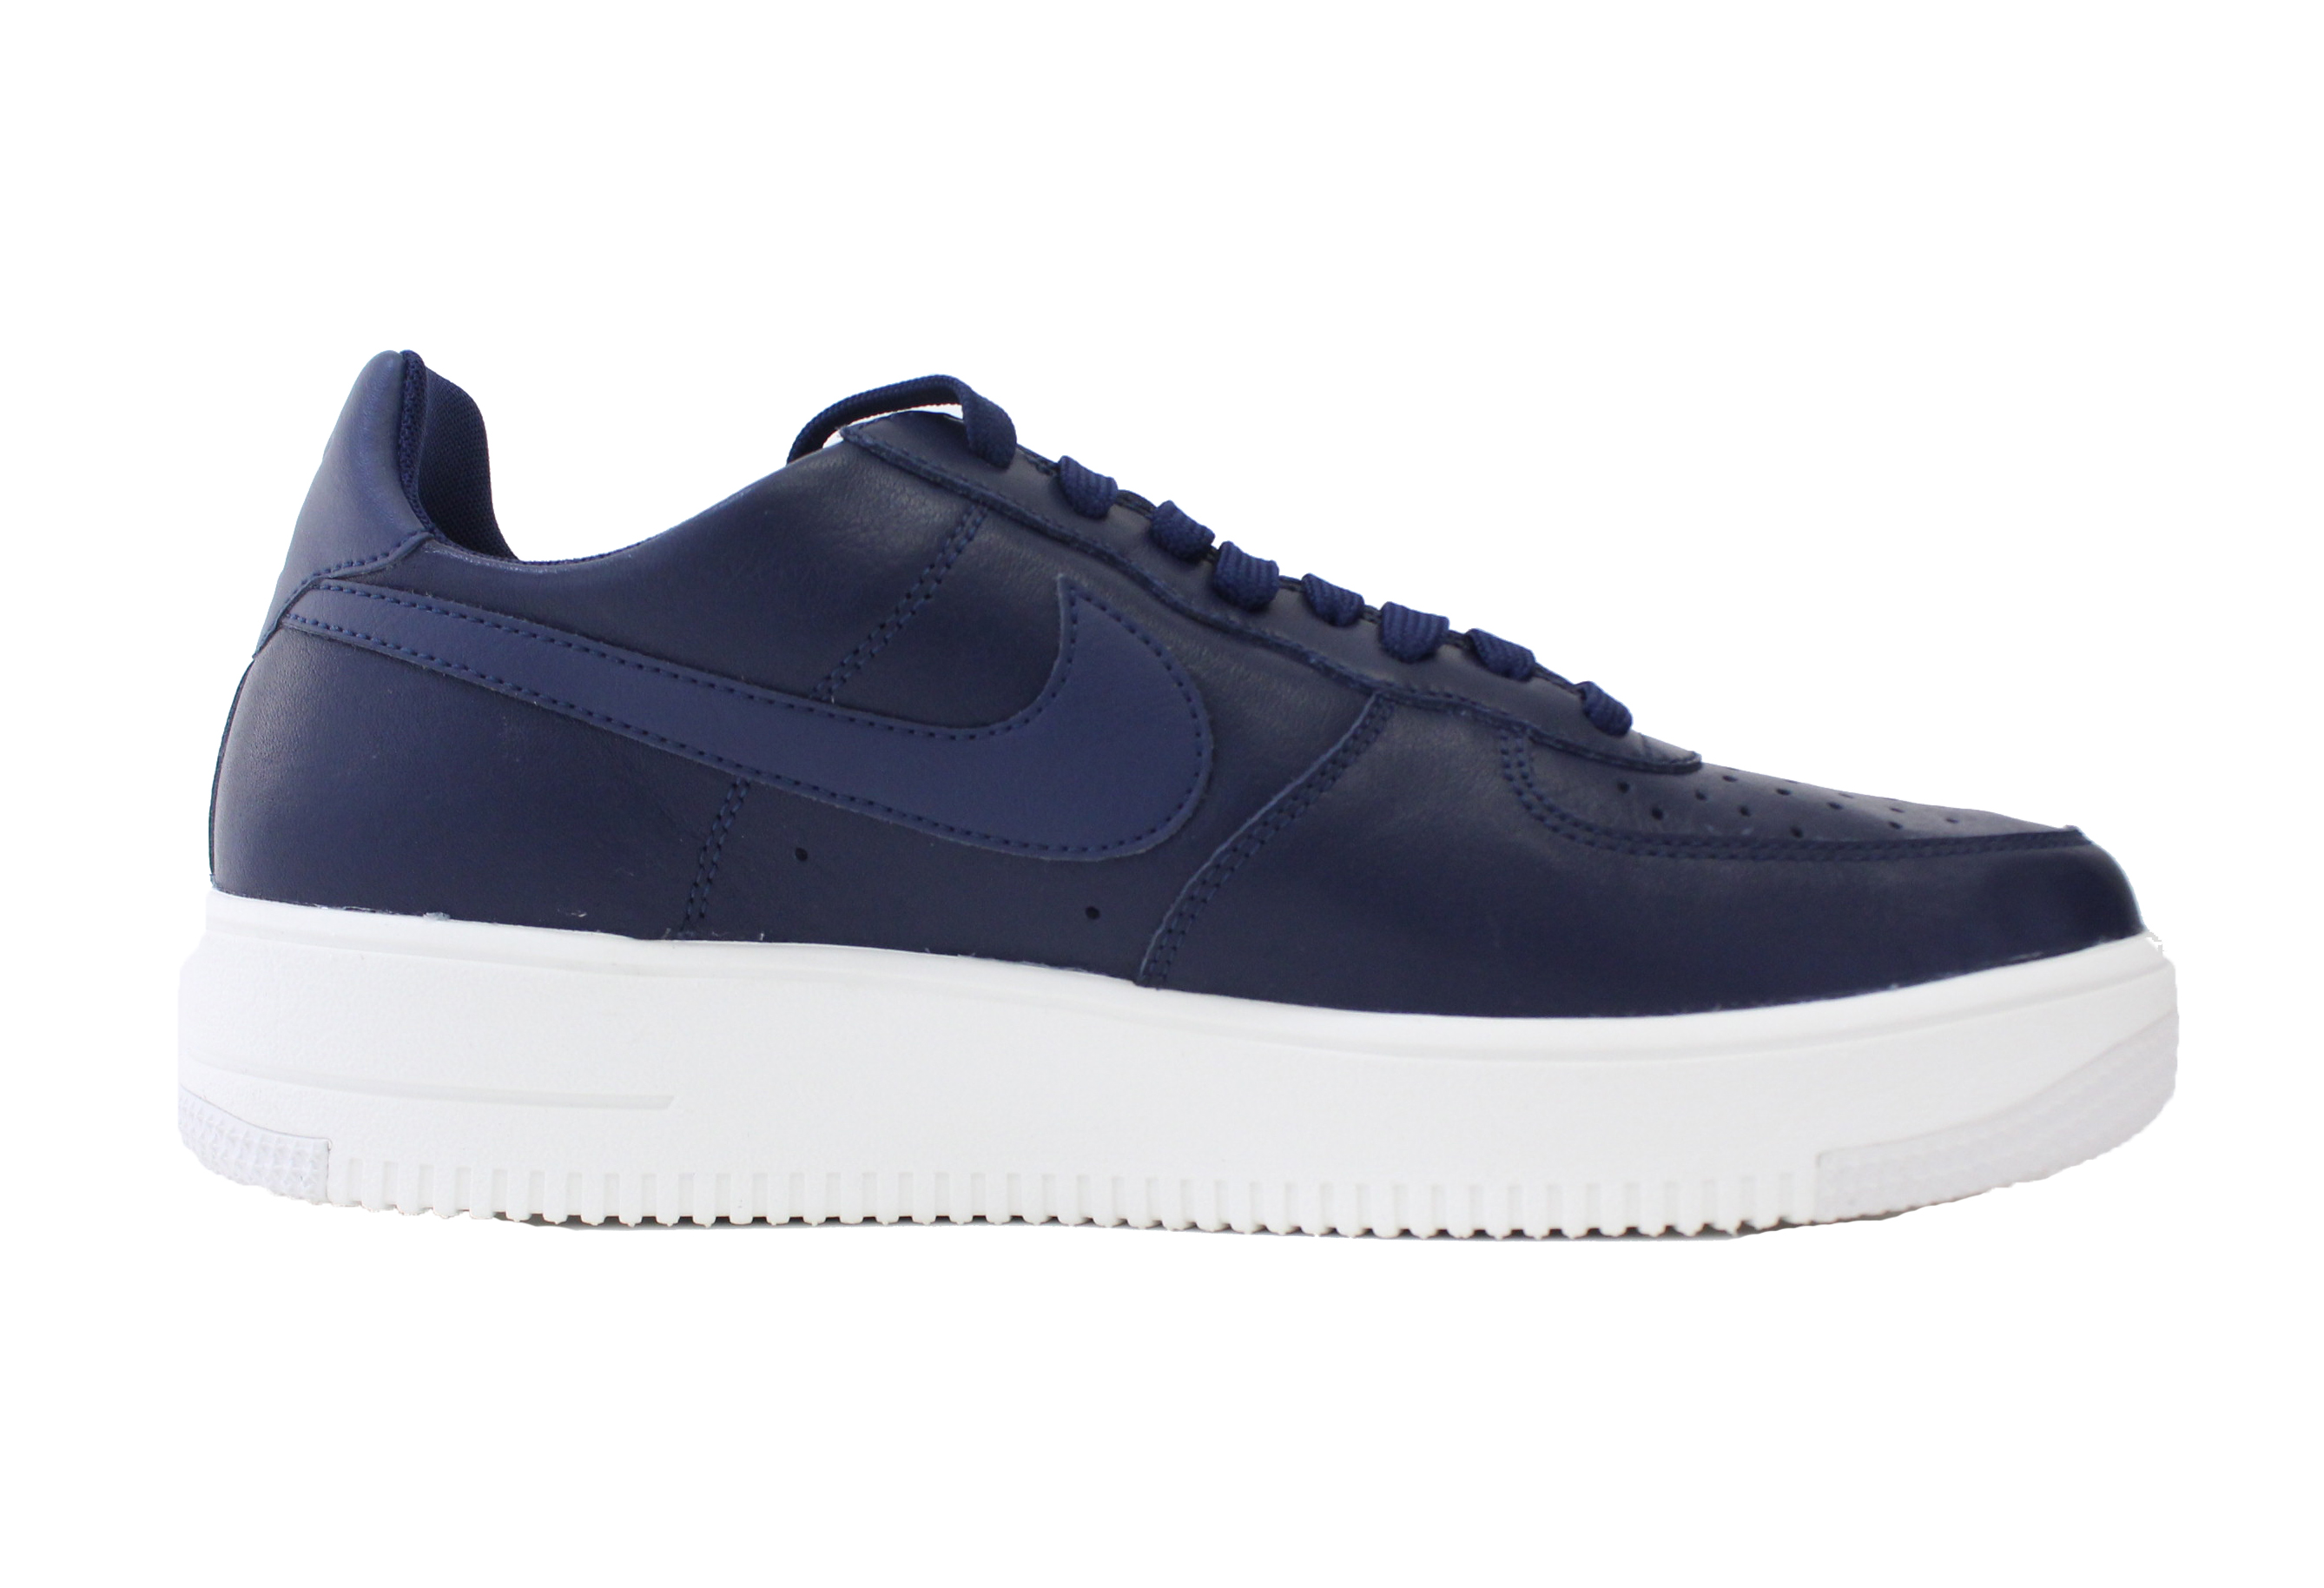 NIKE AIR FORCE 1 ULTRAFORCE LEATHER SZ 13 MIDNIGHT NAVY WHITE LTHR 845052 403